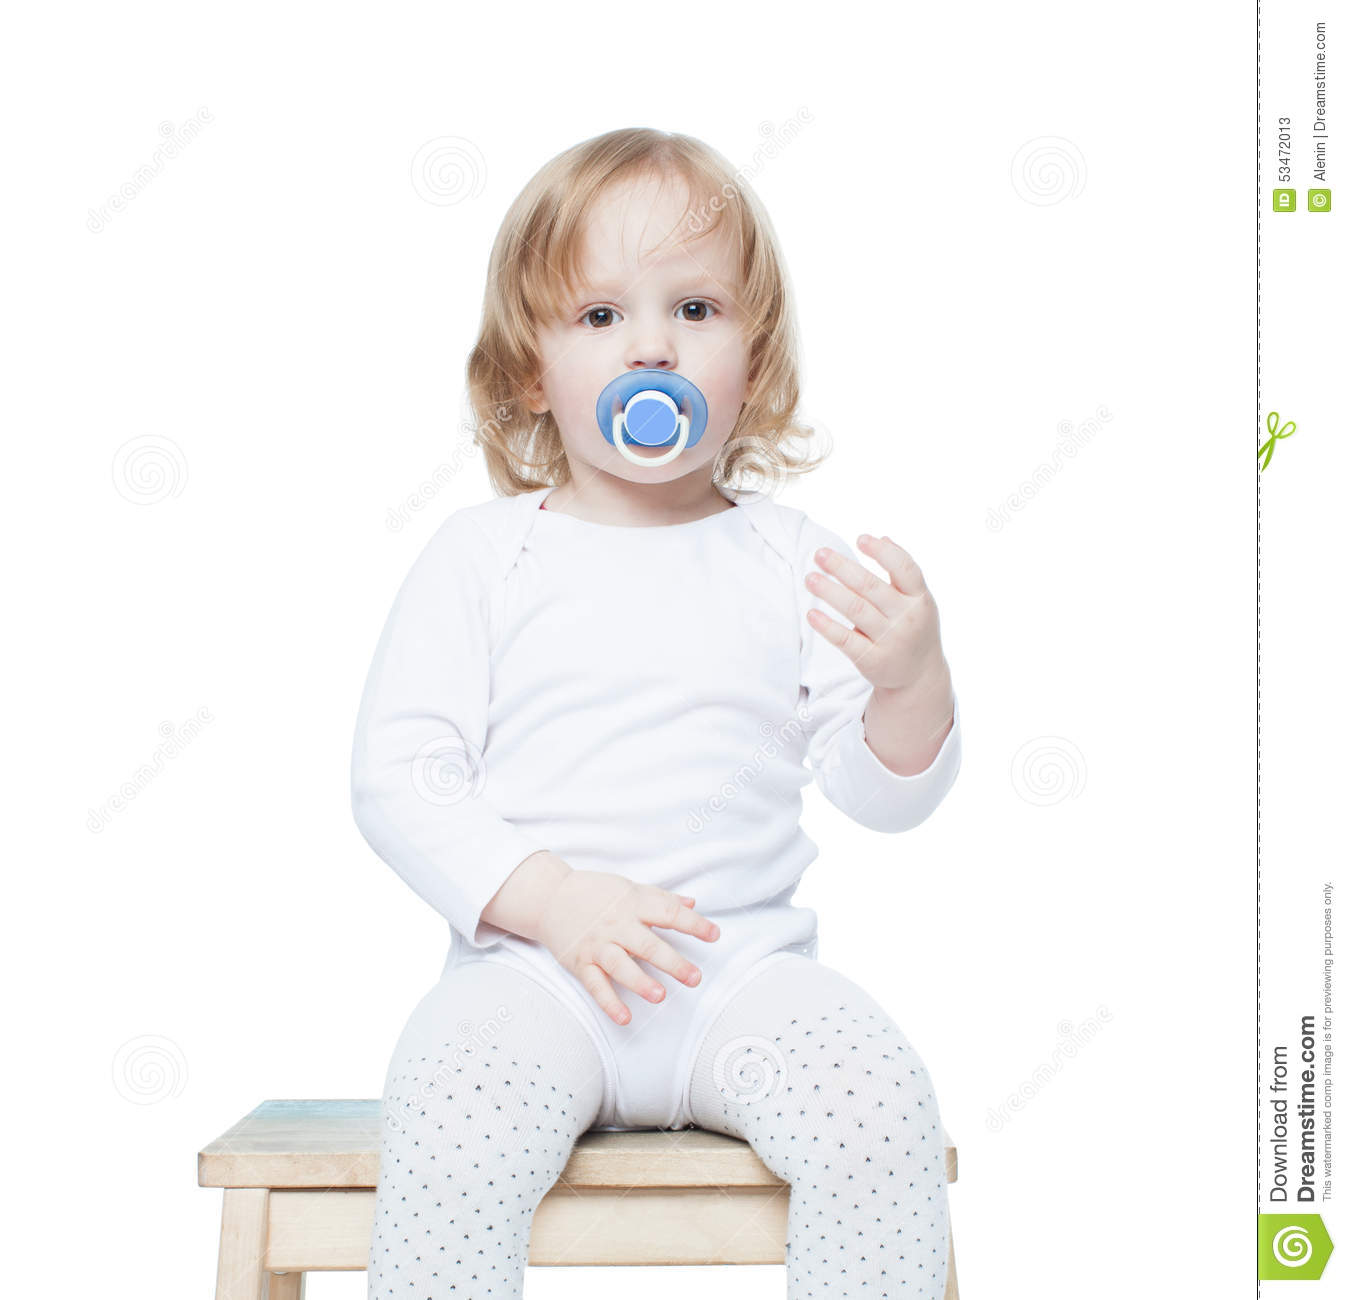 Cute Baby Girl On White Background With Isolation Royalty